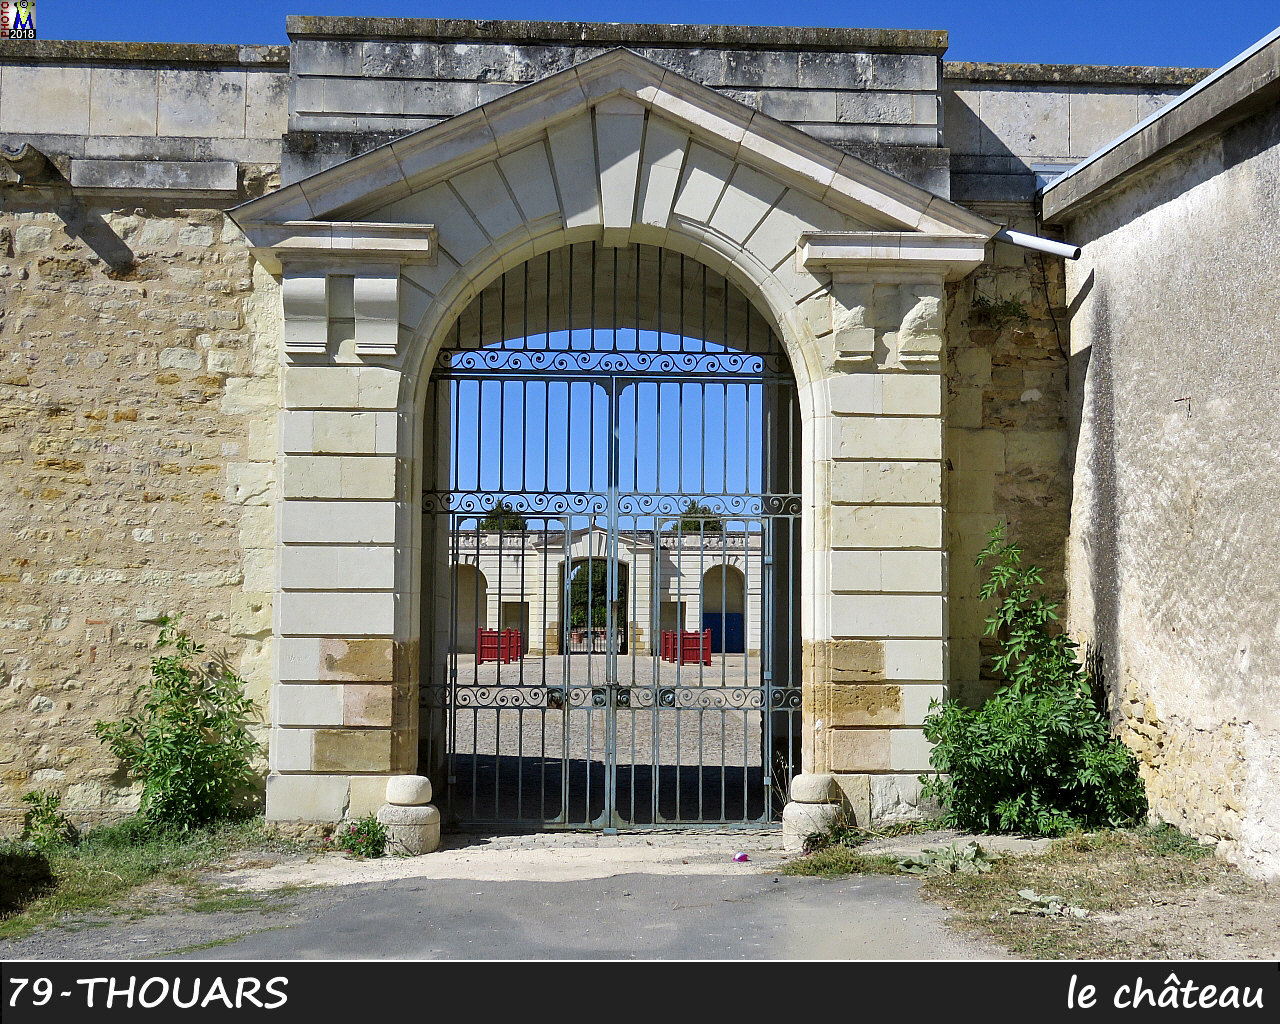 79THOUARS_chateau_1014.jpg